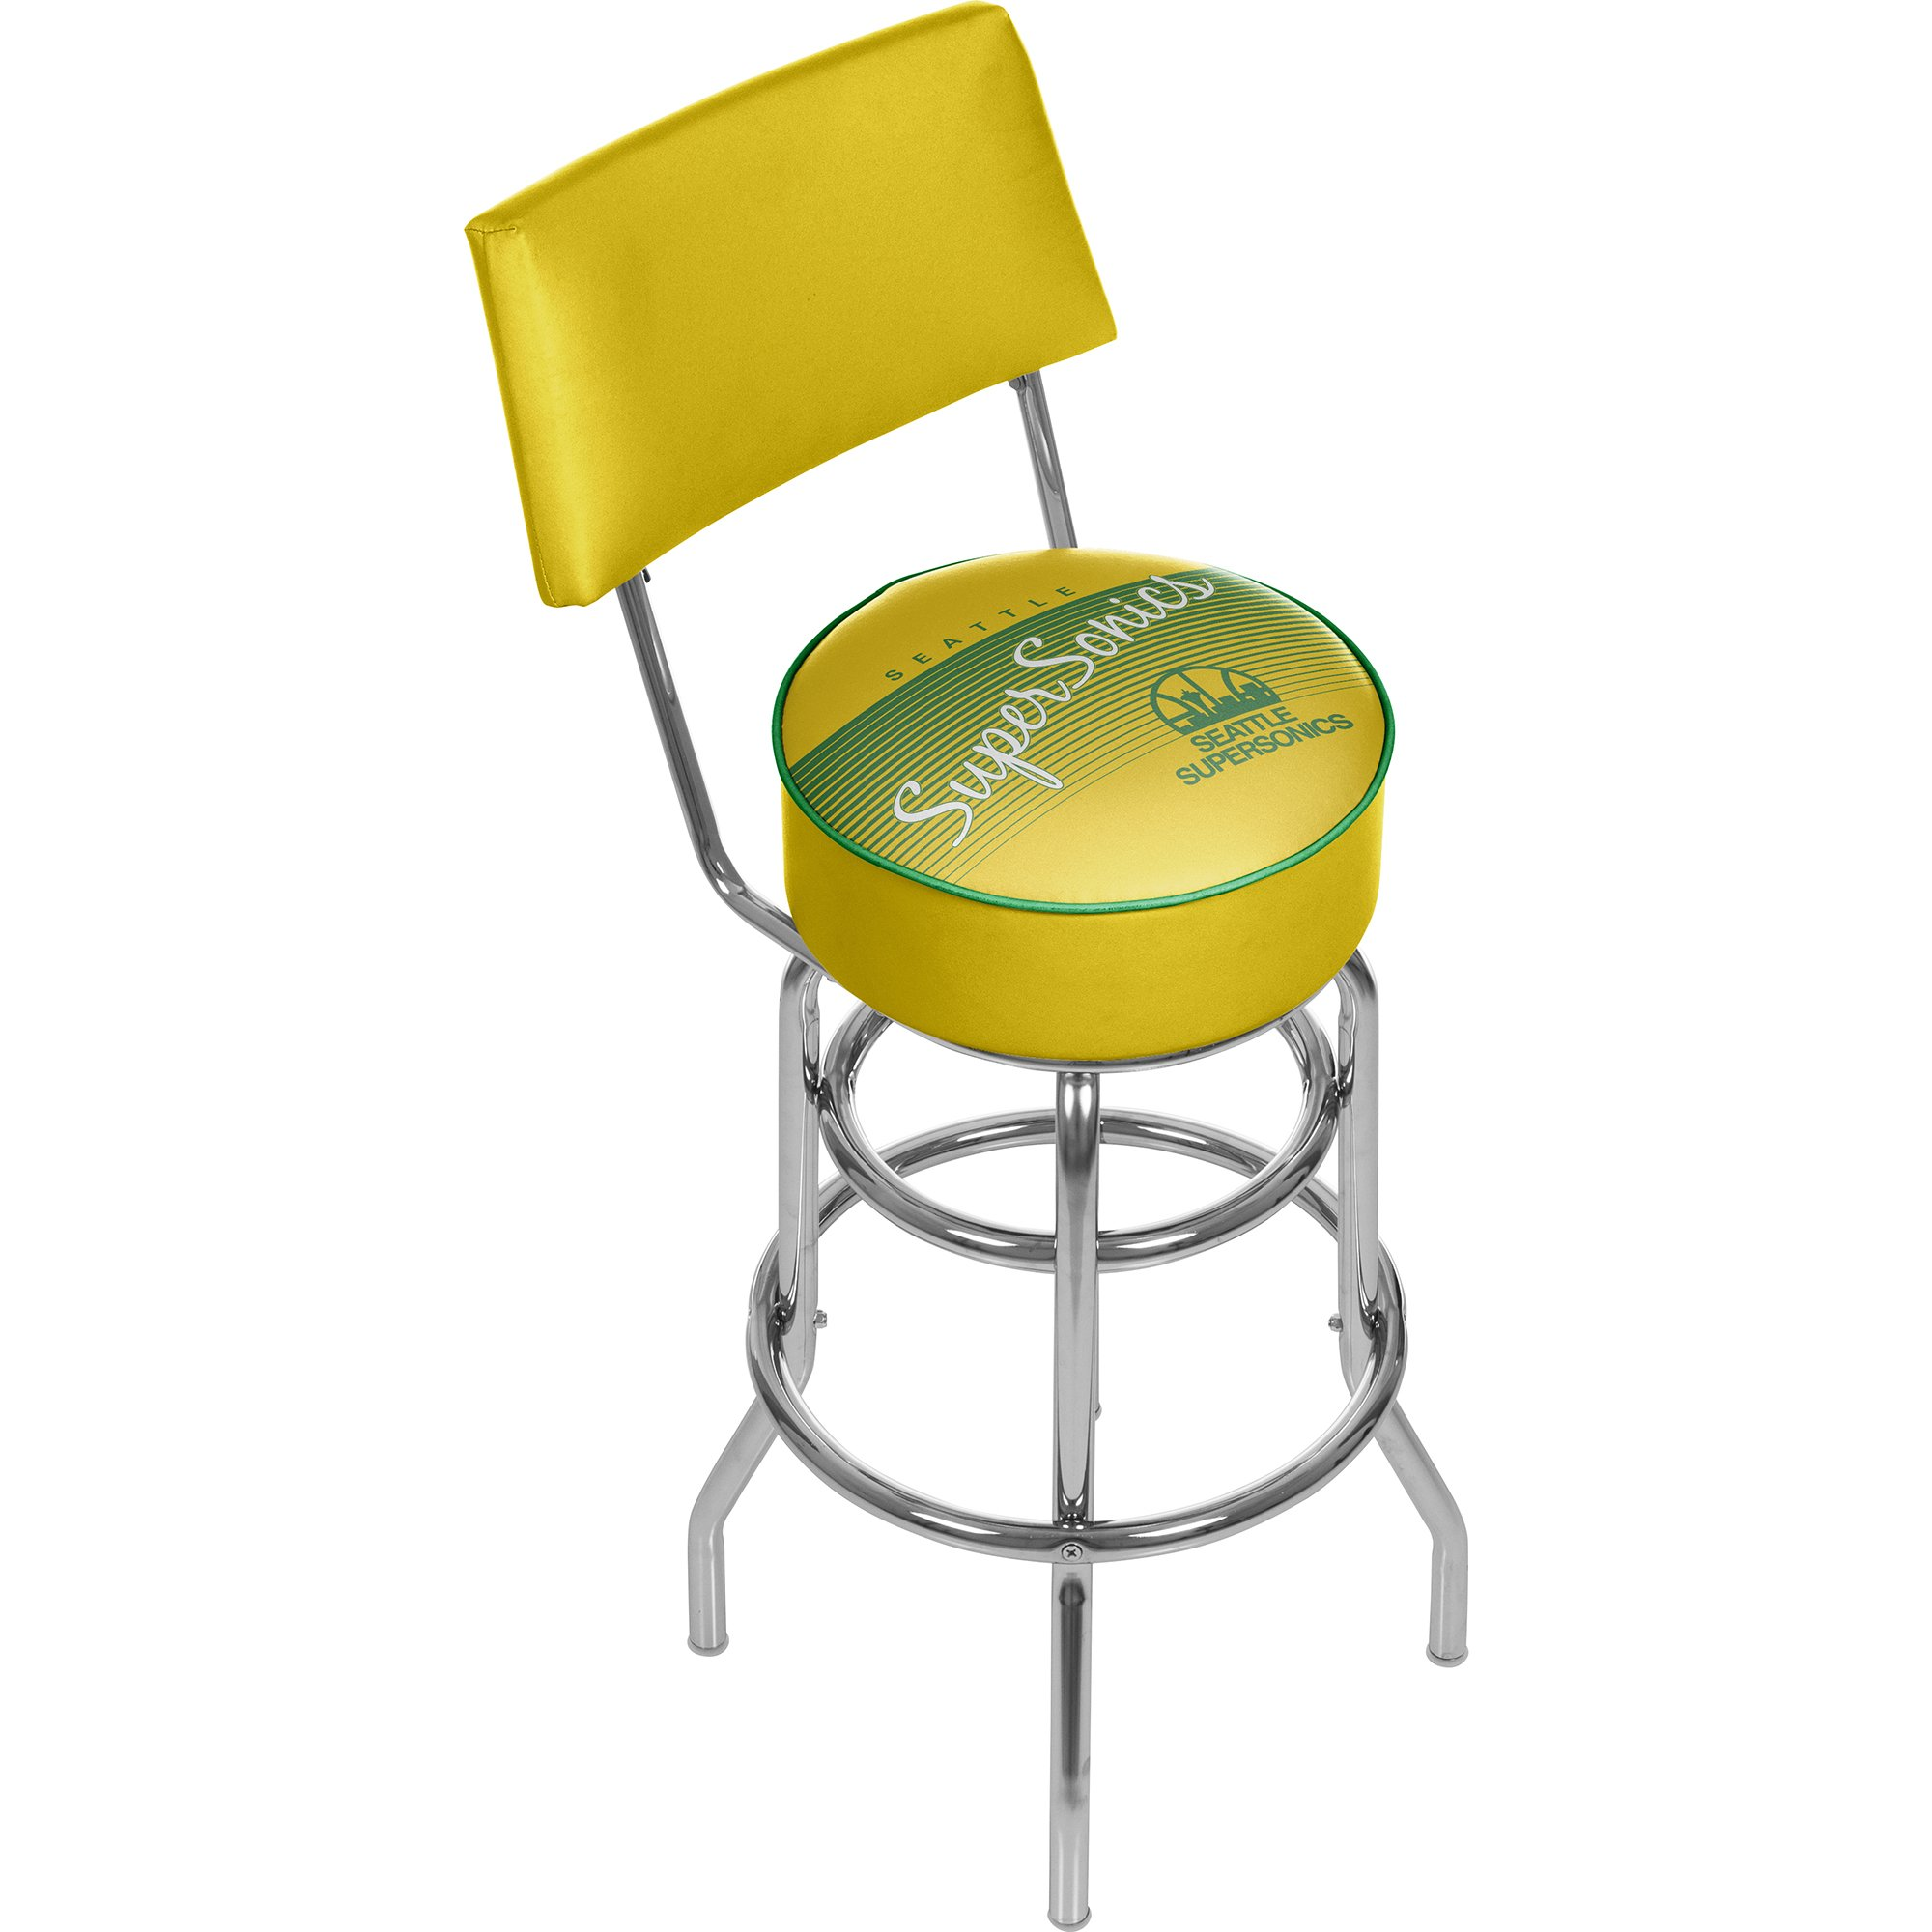 NBA Seattle SuperSonics Seattle Super Sonics Hardwood Classics Bar Stool with Back, One Size, Chrome by Trademark Global